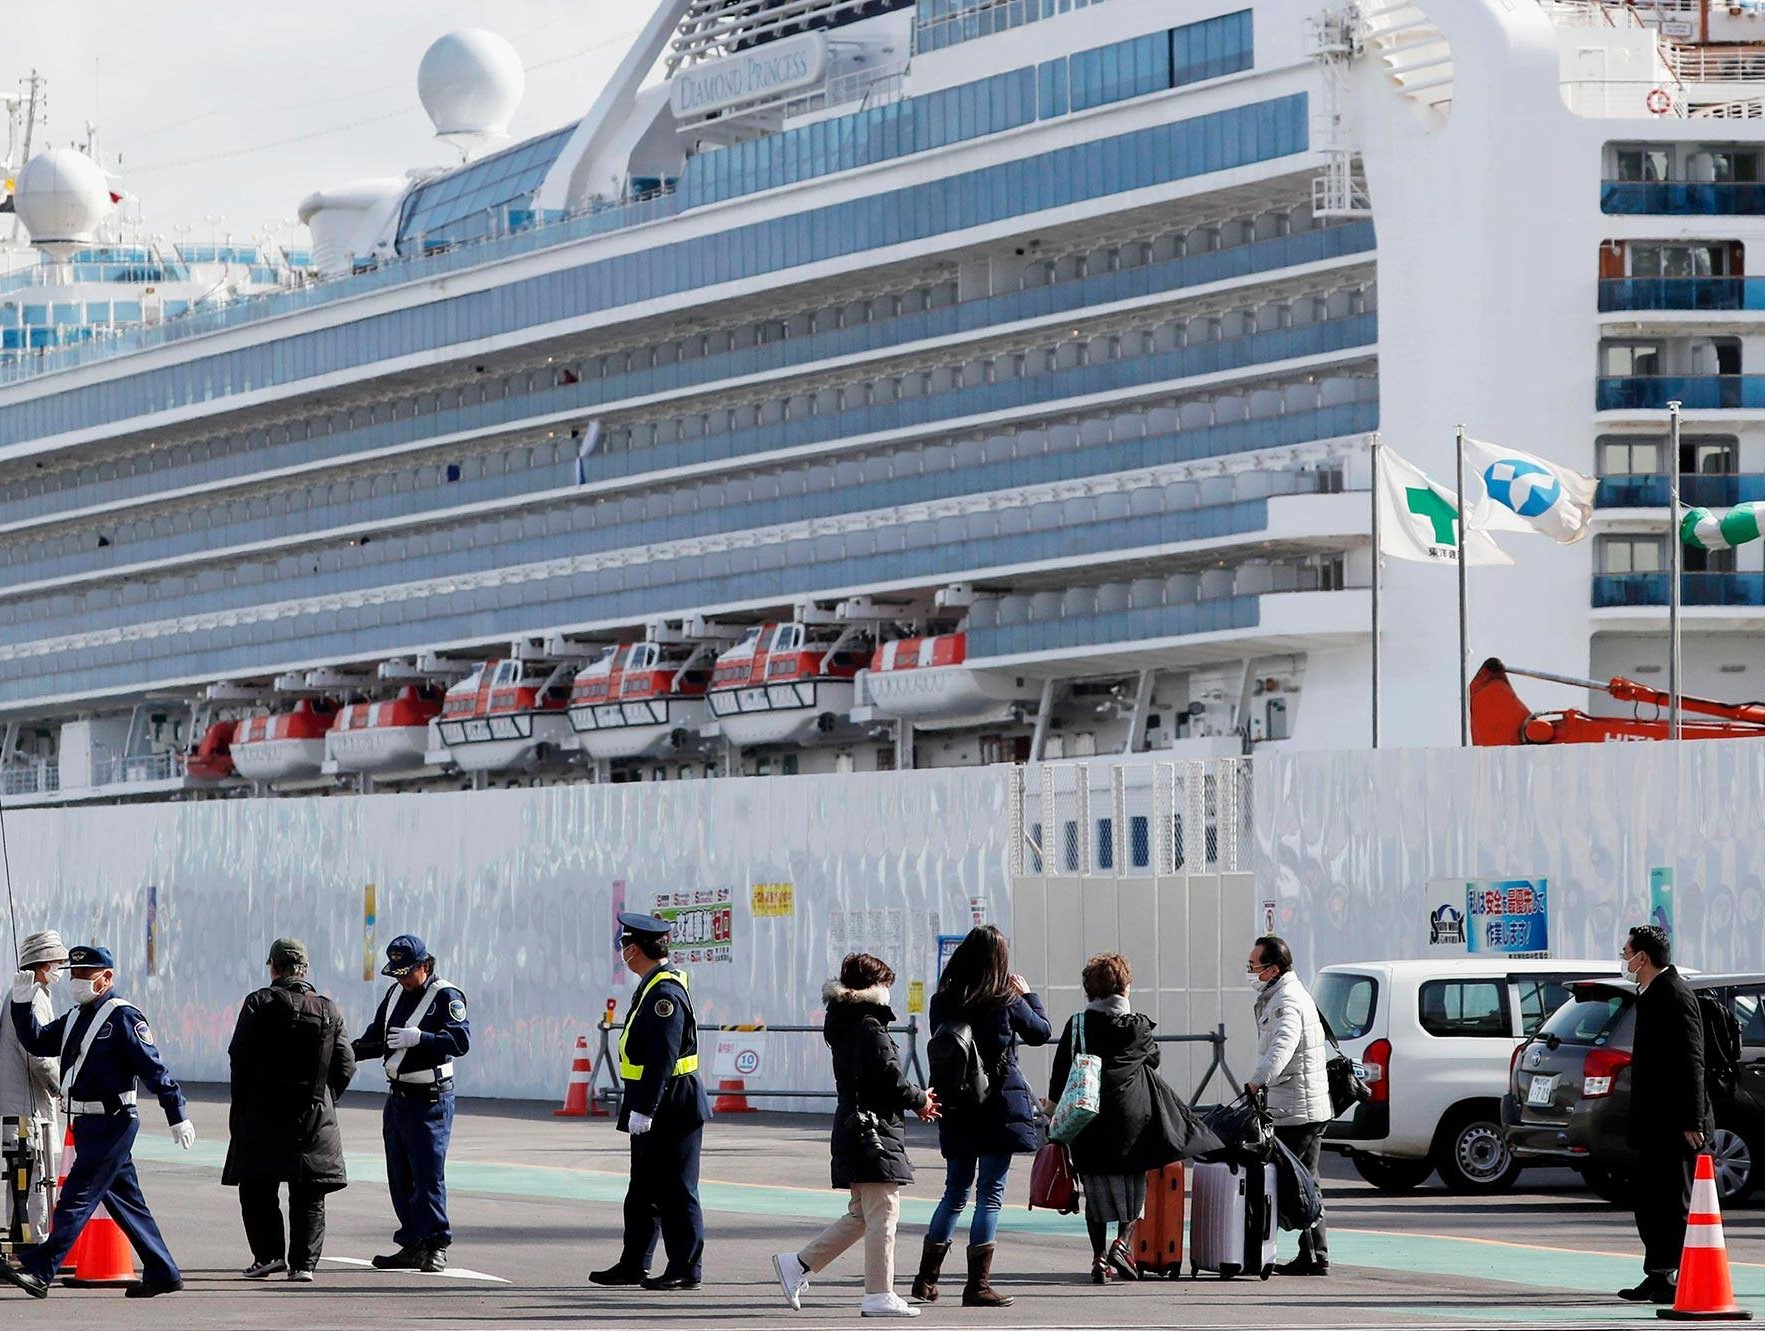 cruise lines guidance for prevention and control of cruise ship operations